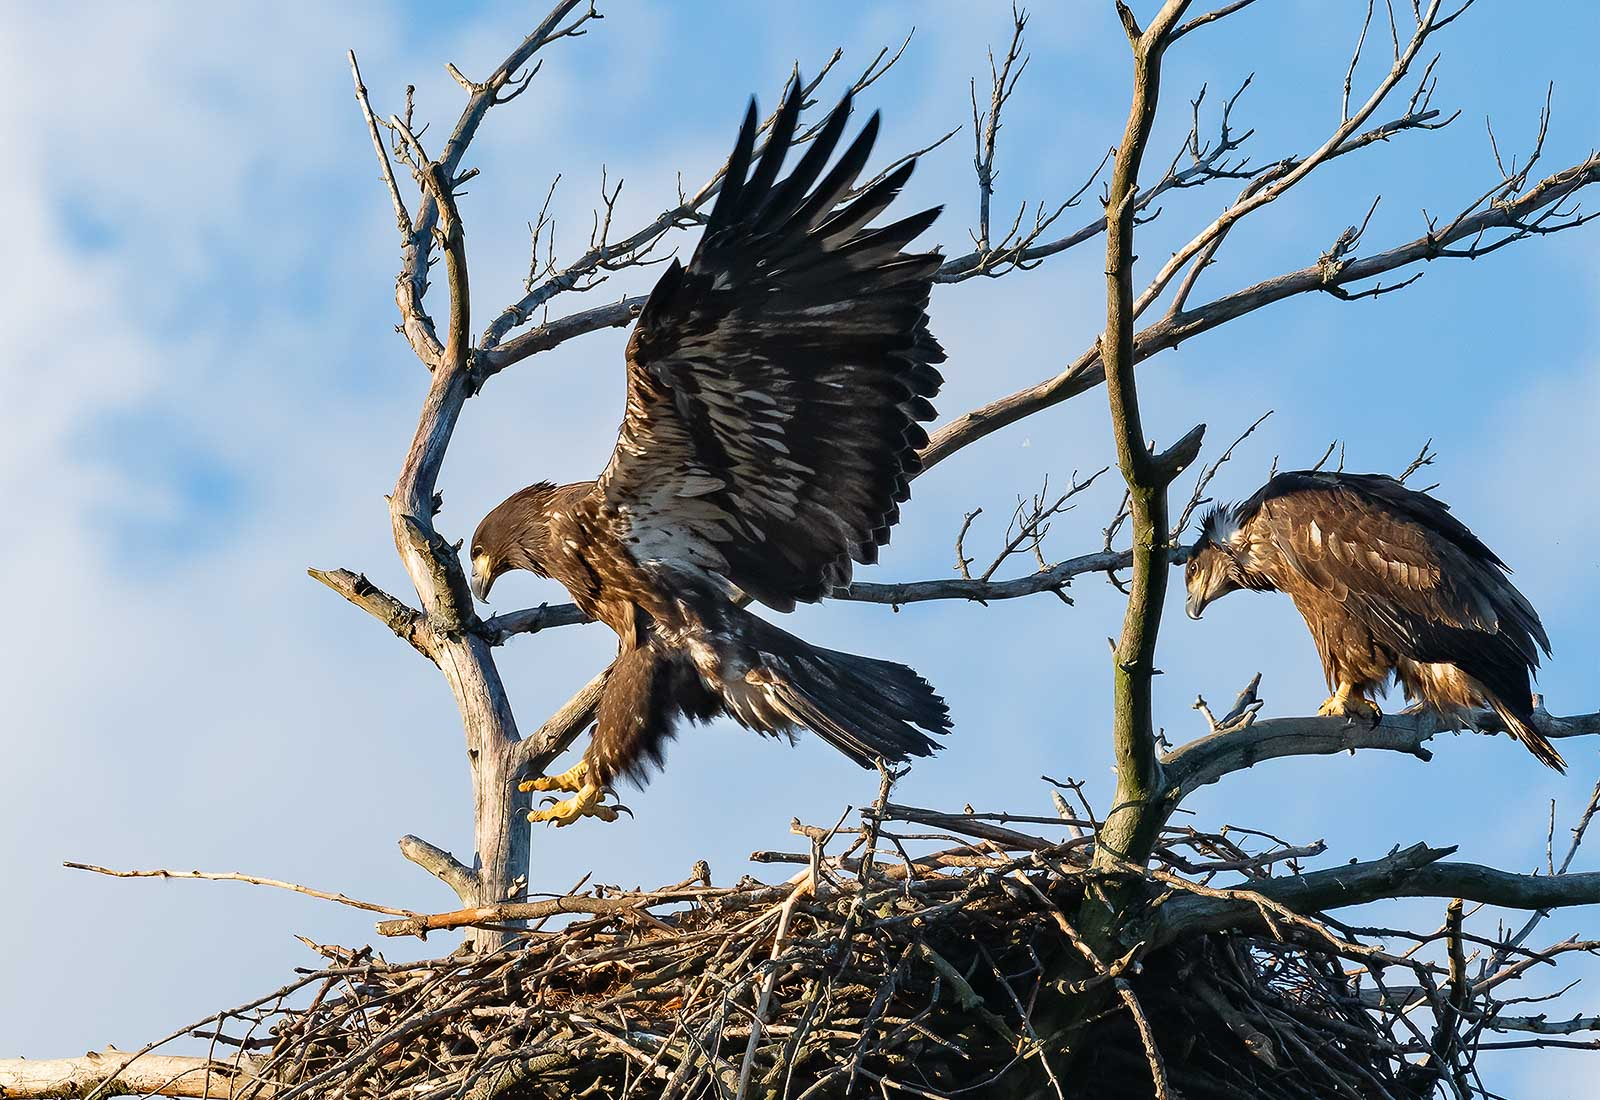 Eaglet siblings watch each other branching